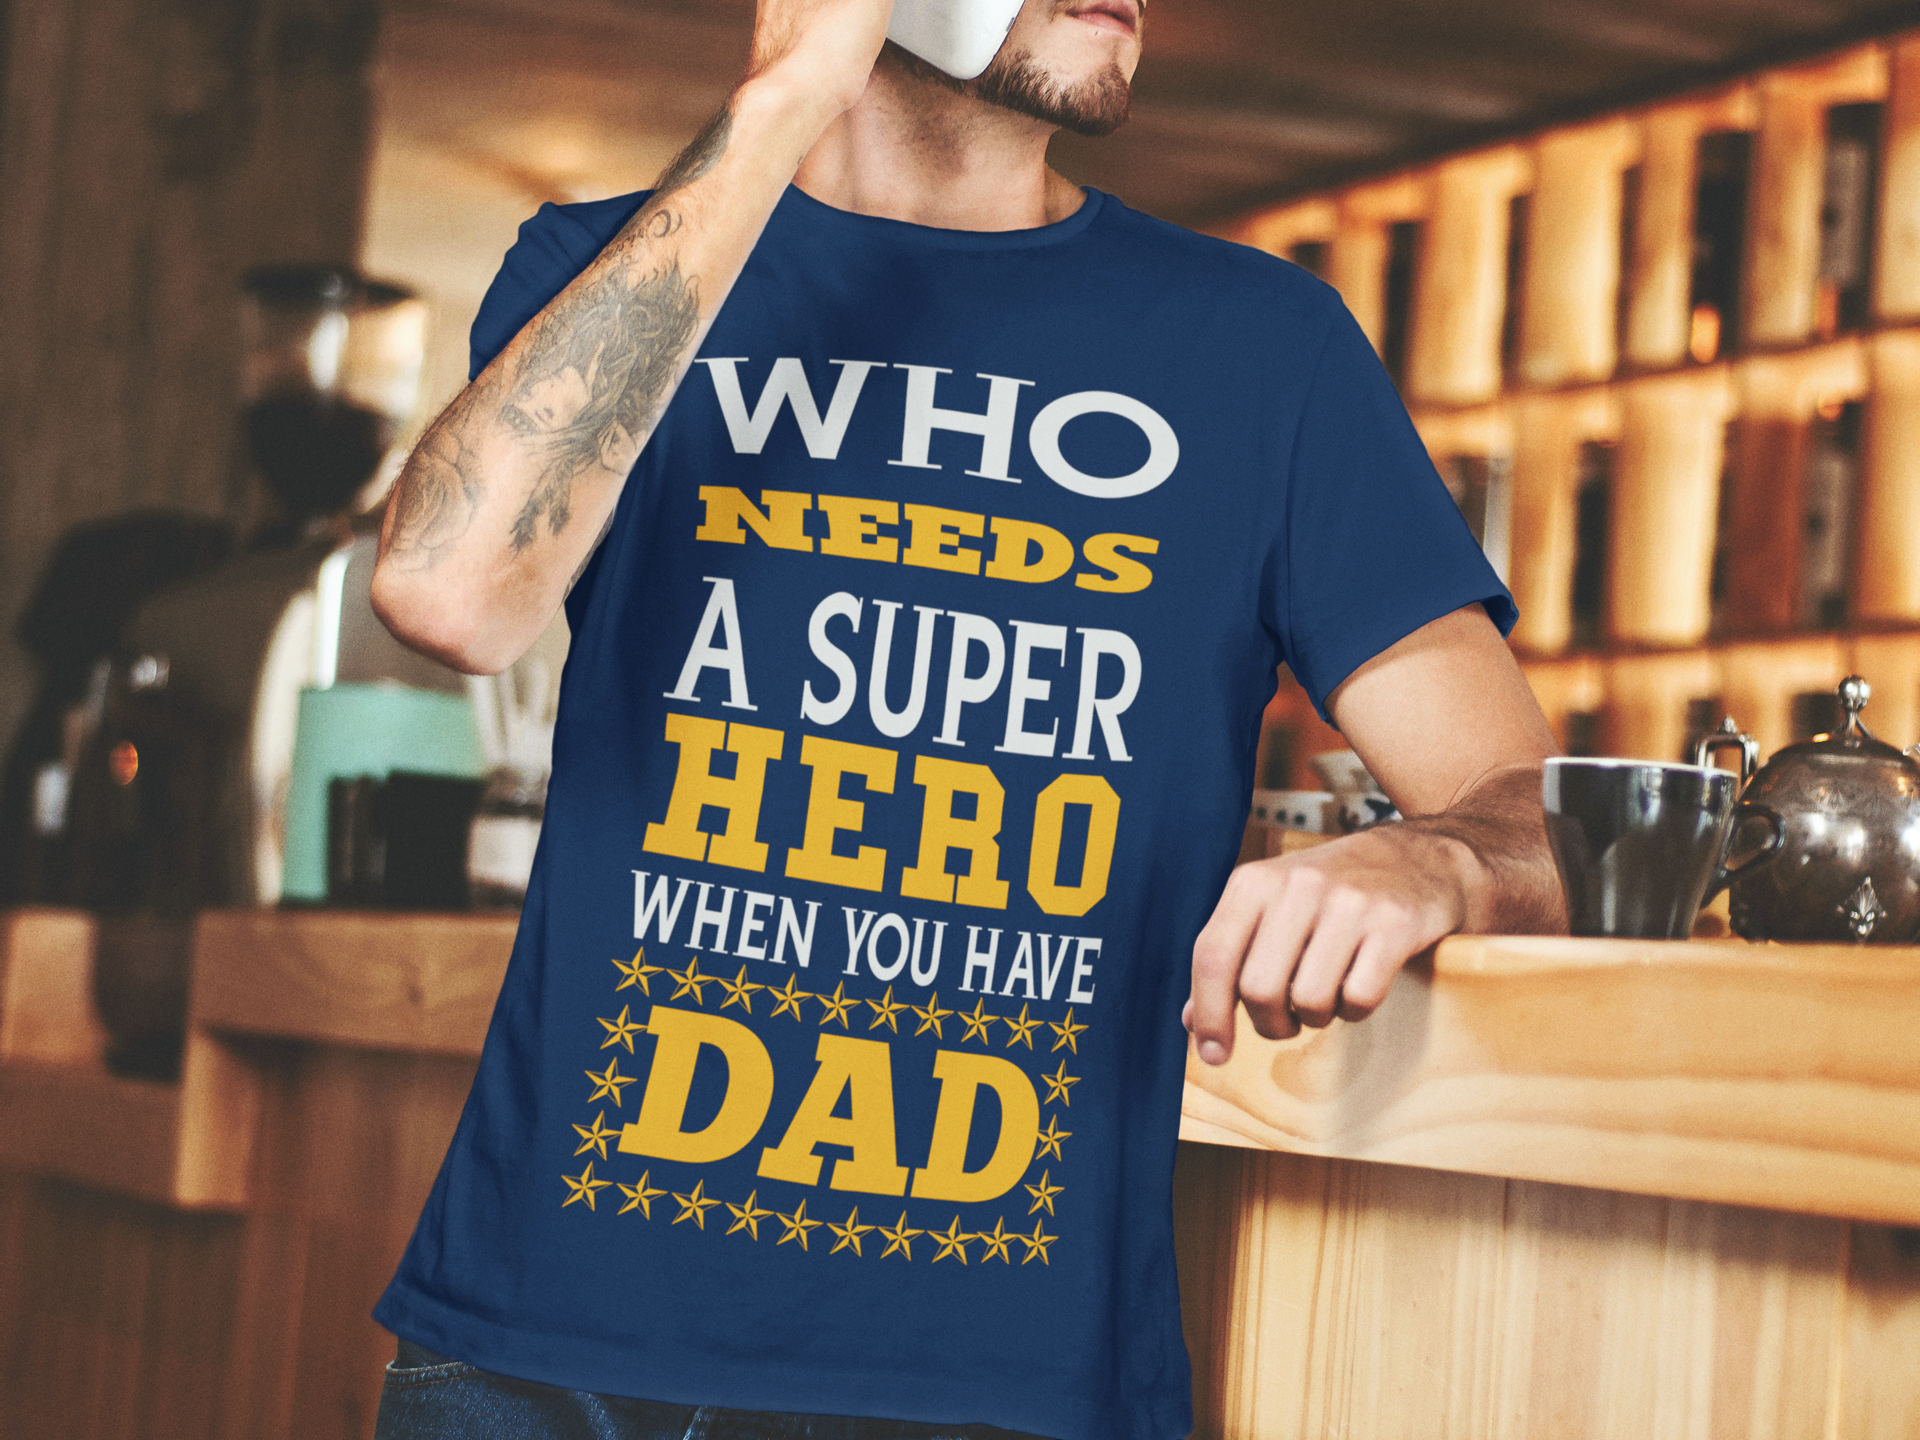 Not Sold in Stores! Only available for a limited time. Perfect gift for Father's Day! Super Dad Fathers Day Gift T-Shirt Another You can Buy Here: https://teespring.com/super-dad-fathers-t-shirt #Father #FathersDay2016 #FathersDayTShirts2016 SECURE PAYMENT GUARANTEED WITH:  VISA - MASTERCARD - PAYPAL  Need Help Ordering? Call Support (1-855-833-7774) Monday-Friday OR  Email: support@teespring.com